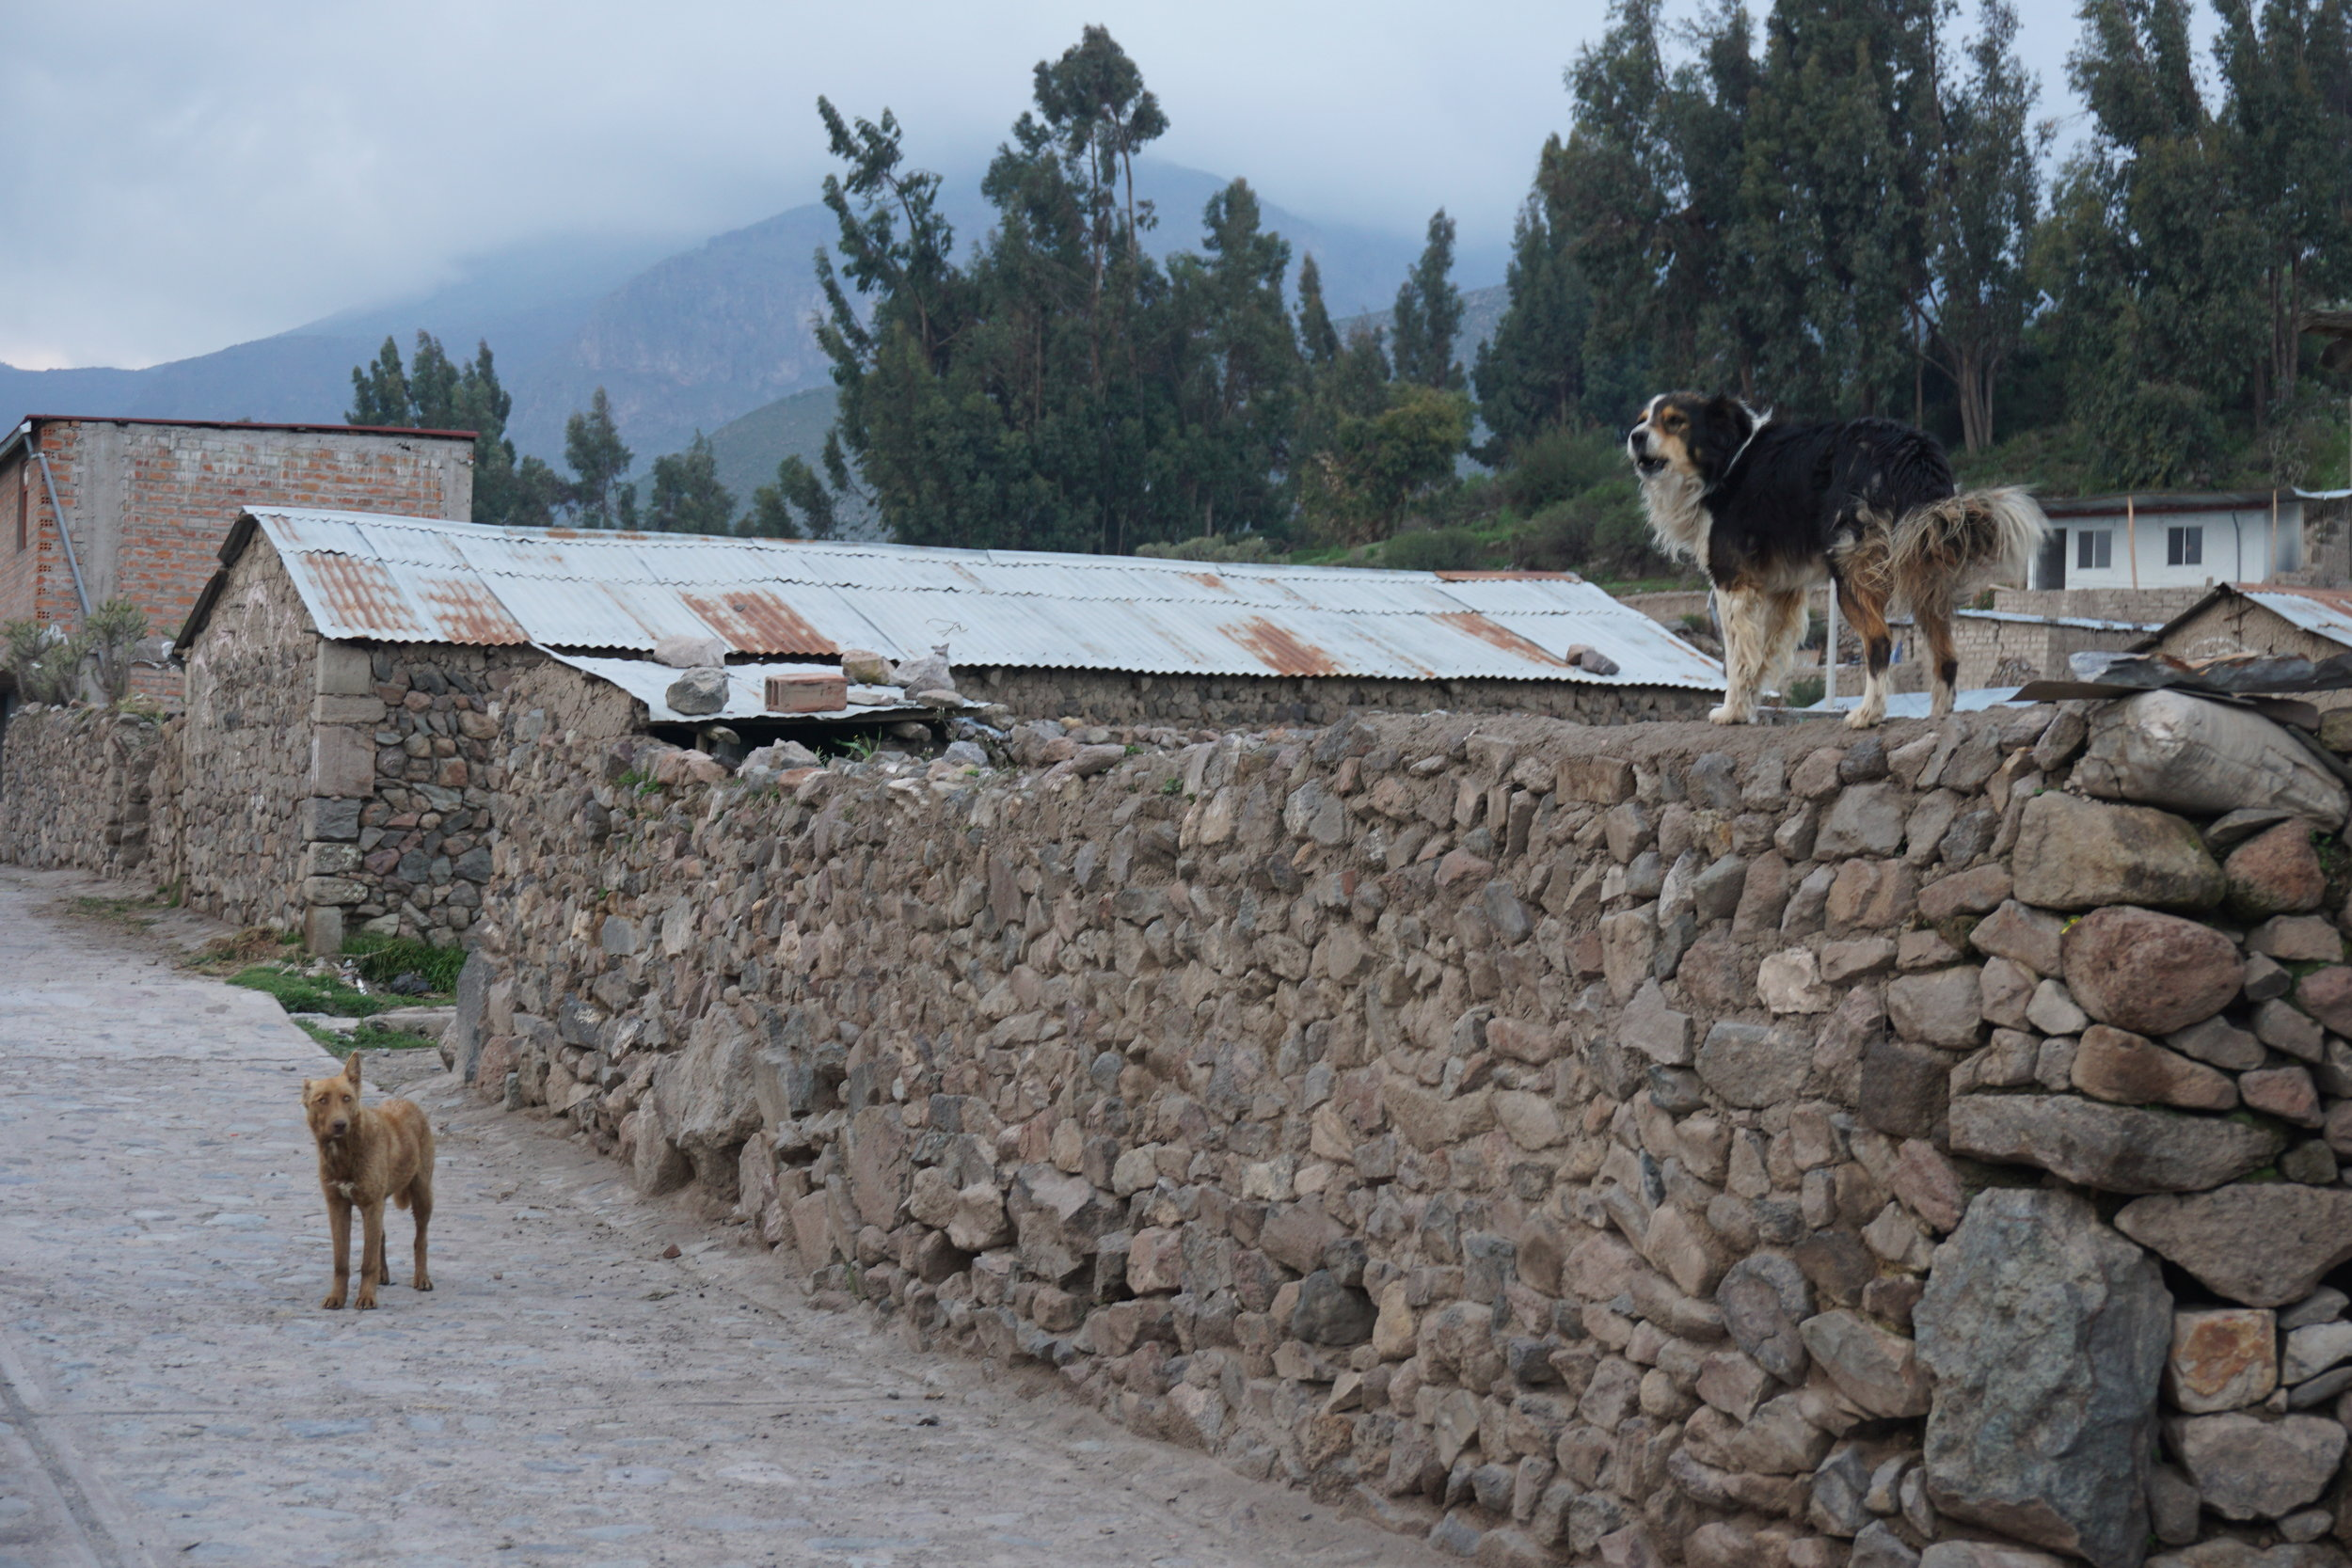 Stray dogs telling us who's boss in the village of Pinchollo, where Colca Trek Lodge is located.